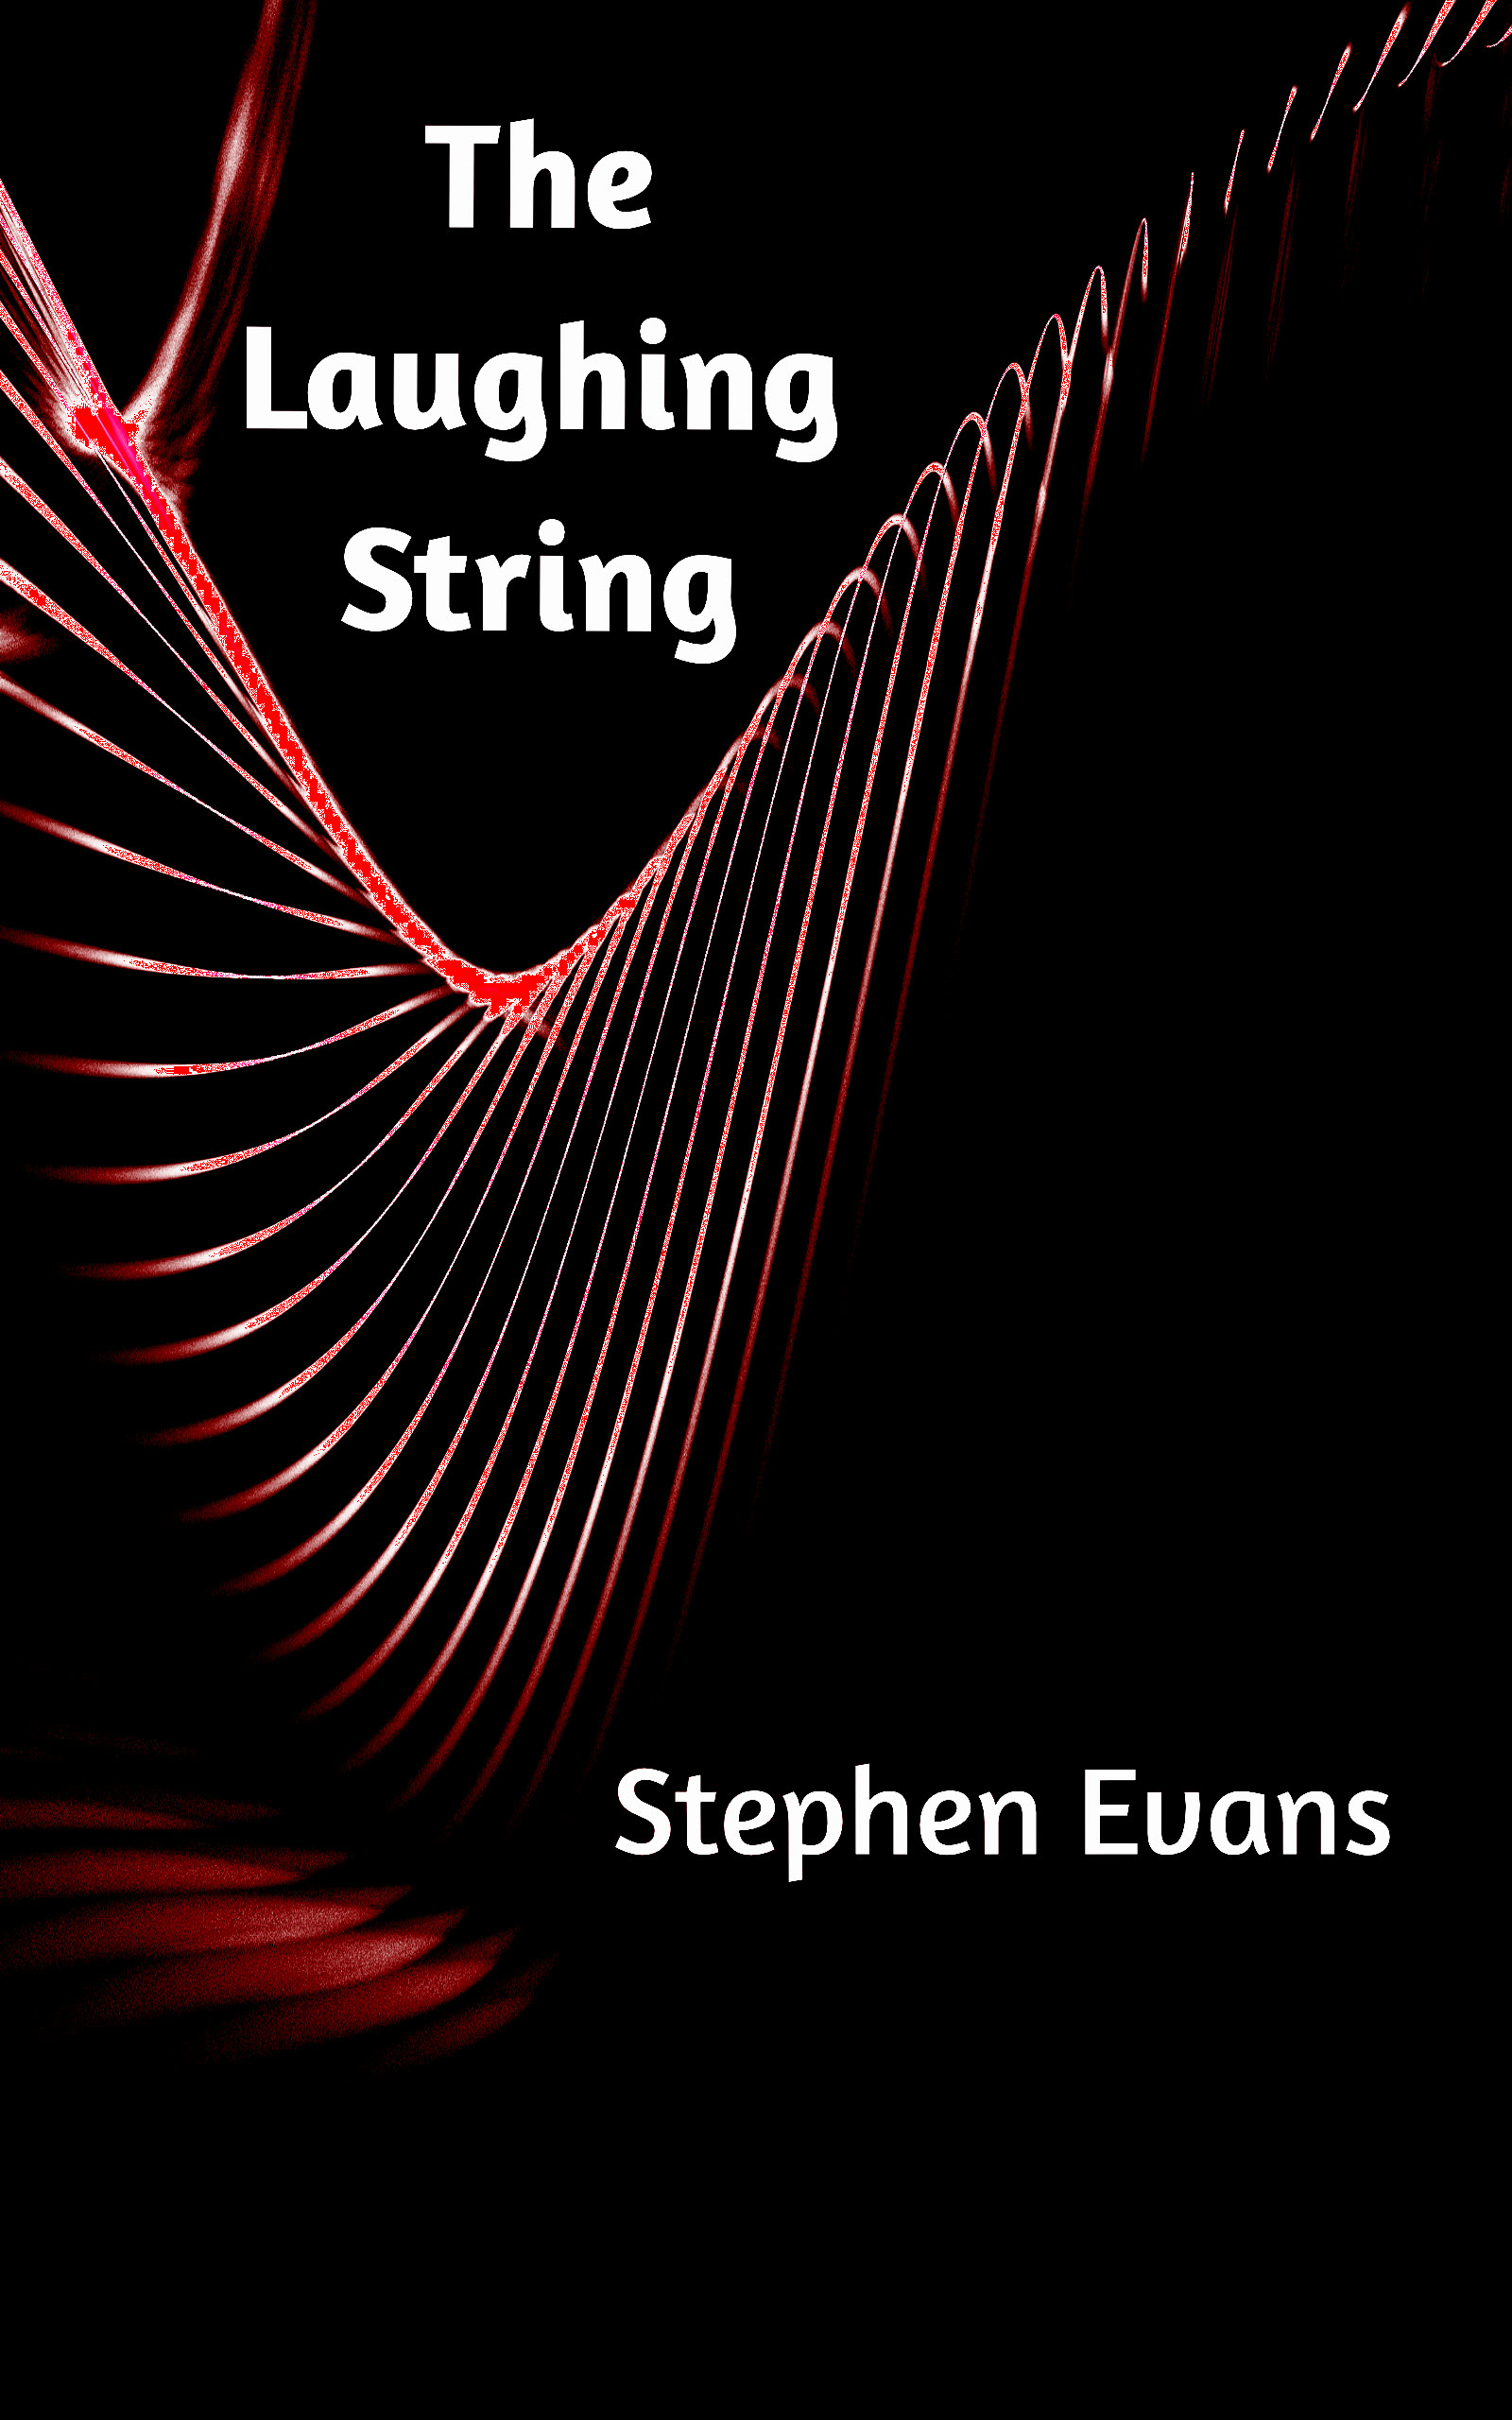 The Laughing String 5x8 ebook cover 6282020 4